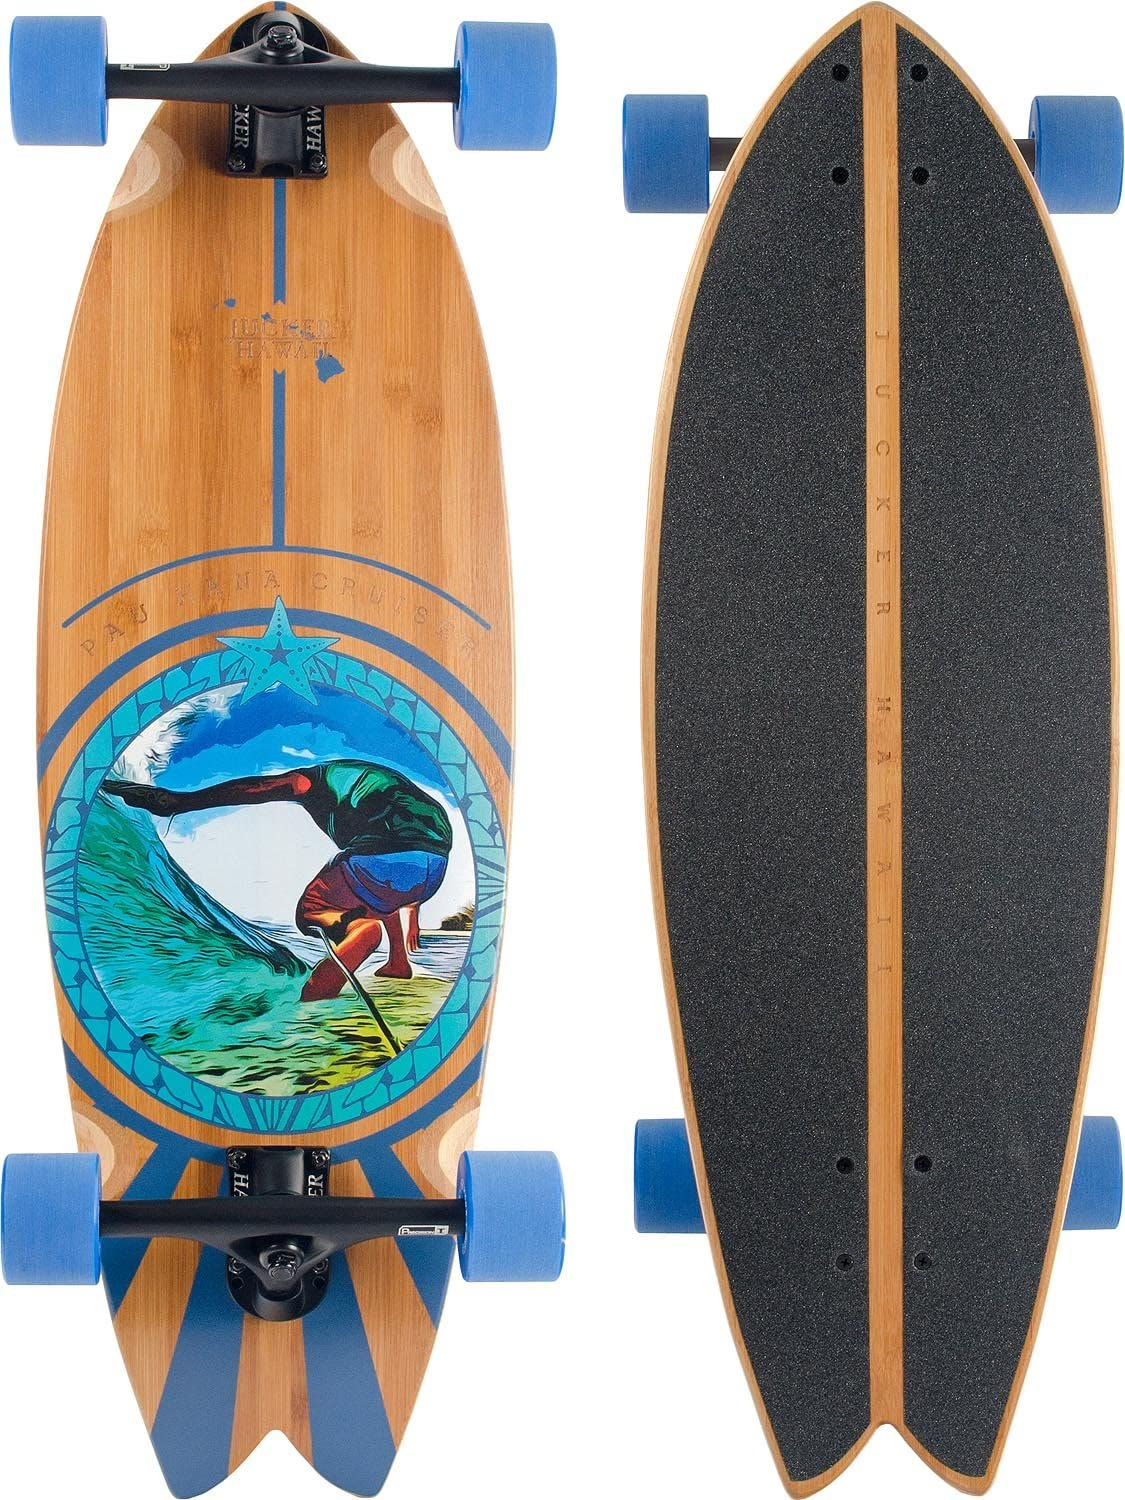 JUCKER HAWAII Skatesurfer® Carving Skateboard PAU Hana